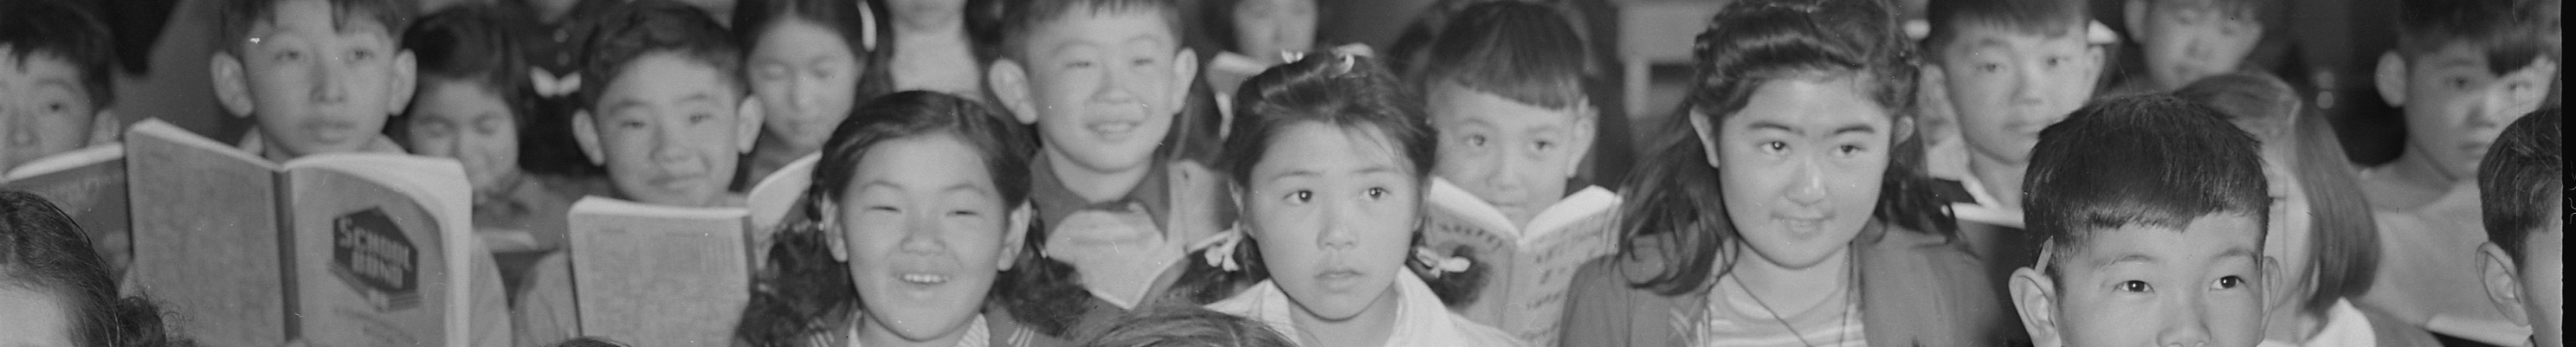 A photo of Japanese American children facing the camera with books open during a grammar lesson